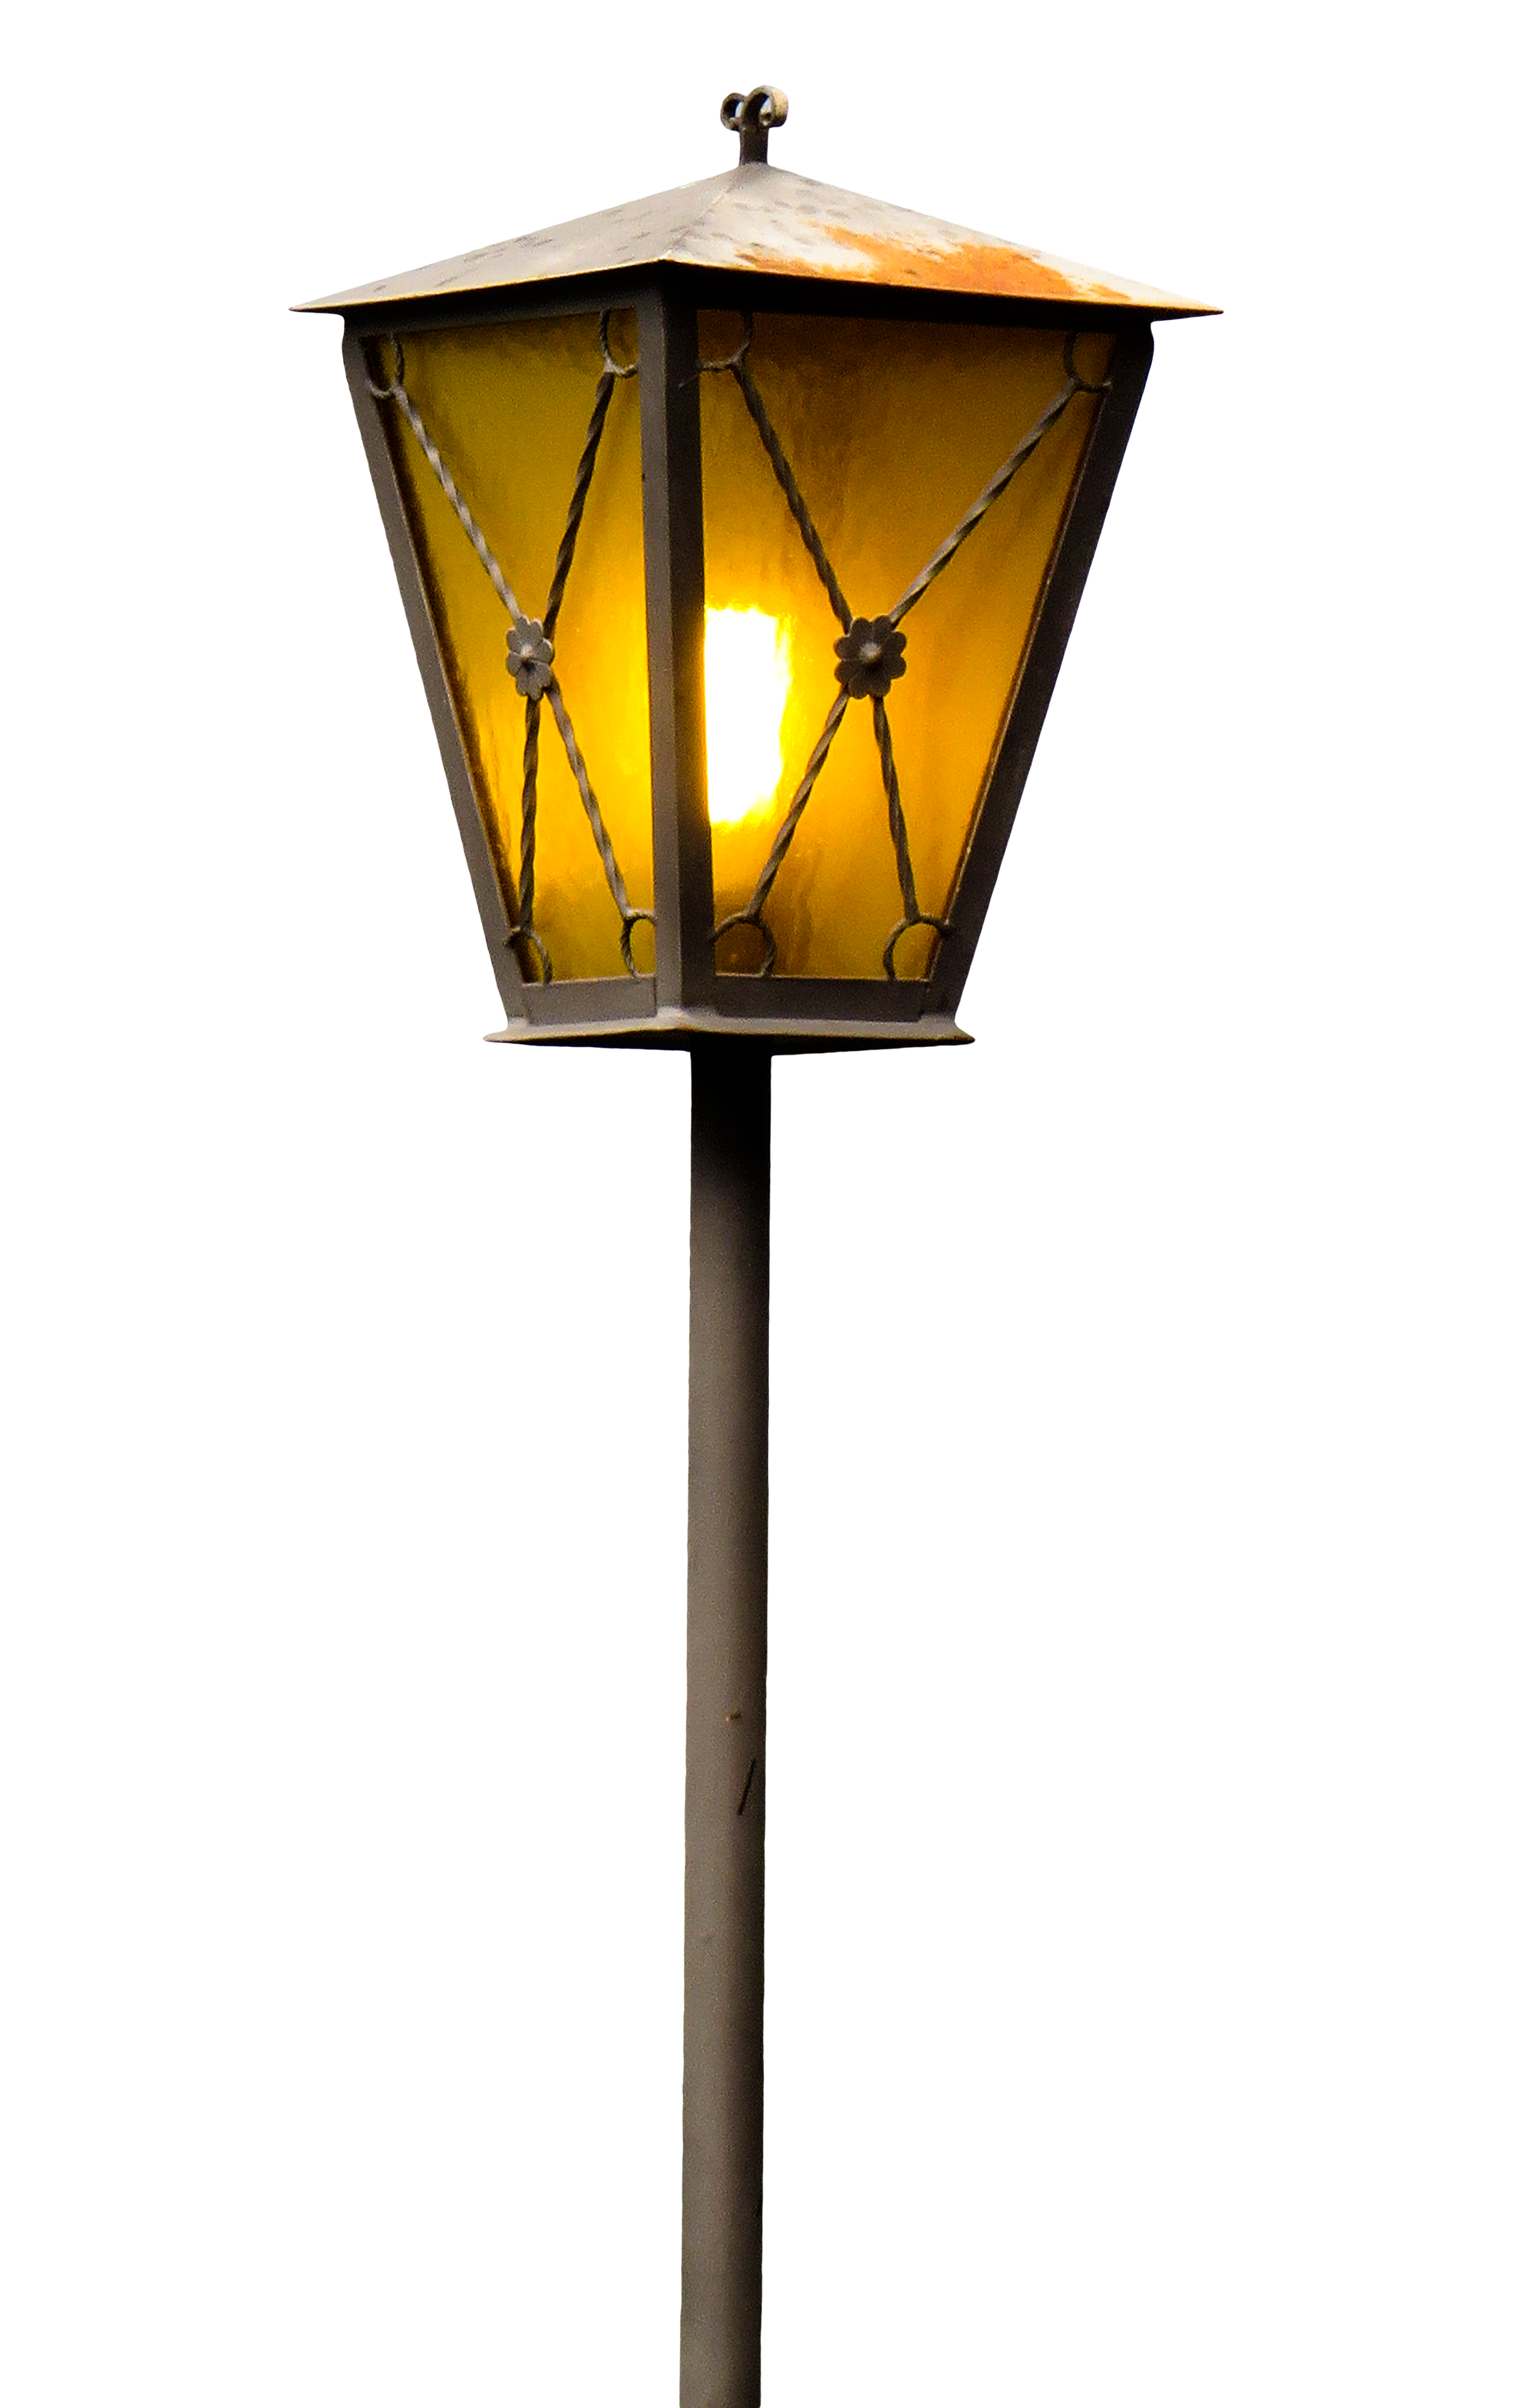 Old street png image. Lamp clipart lamplight